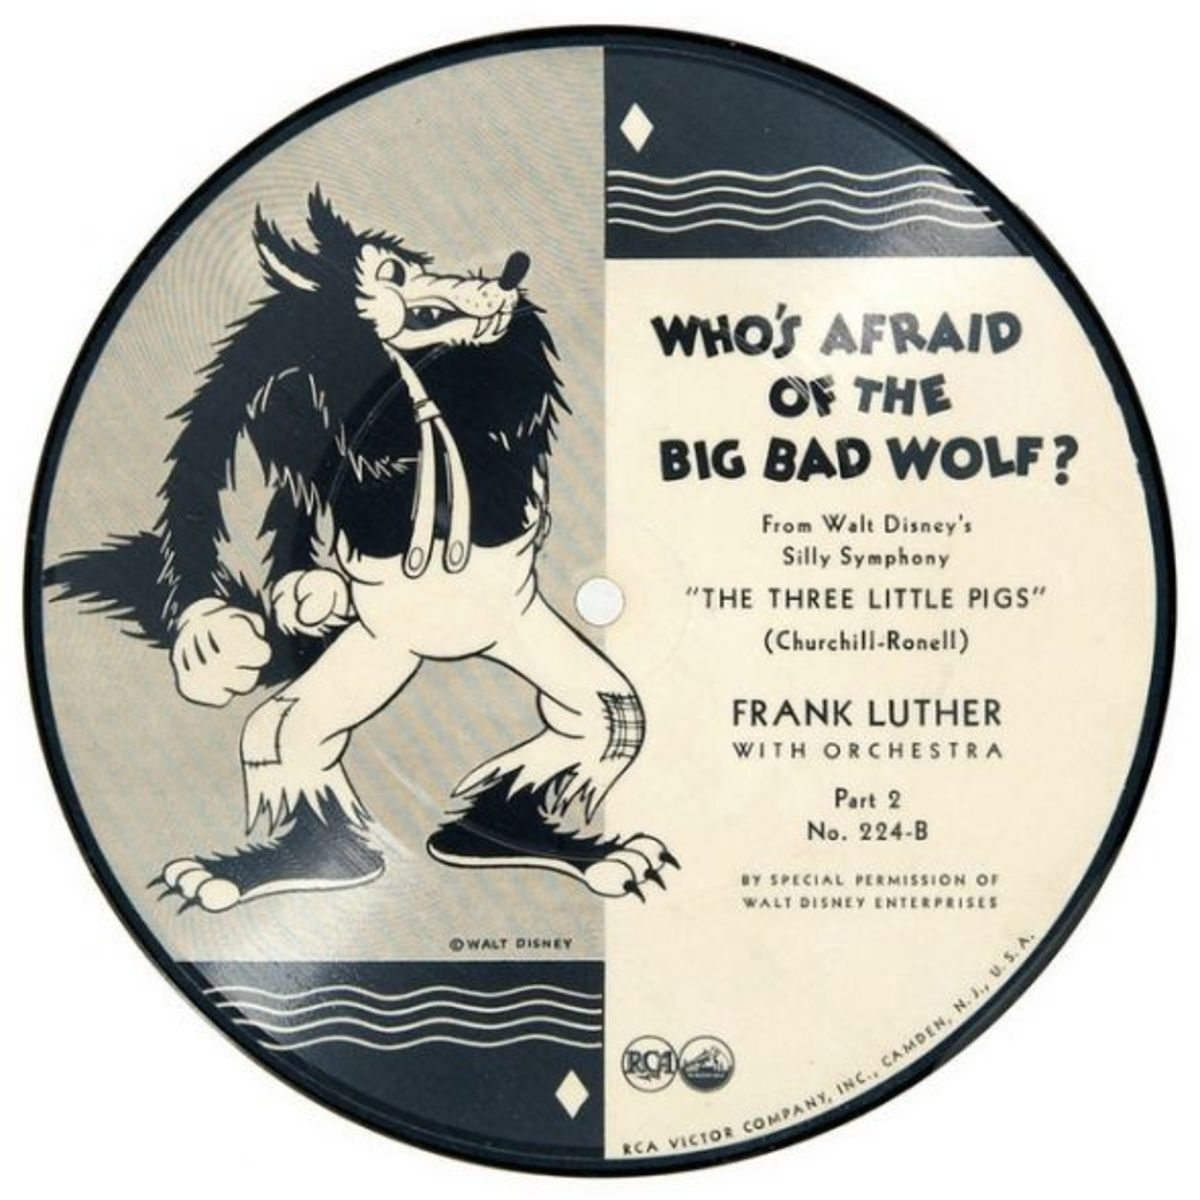 "Frank Luther and His Orchestra Walt Disney Silly Symphony ""The Three Little Pigs"" b/w ""Who's Afraid of the Big Bad Wolf?"" RCA Victor 224-B Part 2 7"" 78 rpm Shellac Record"